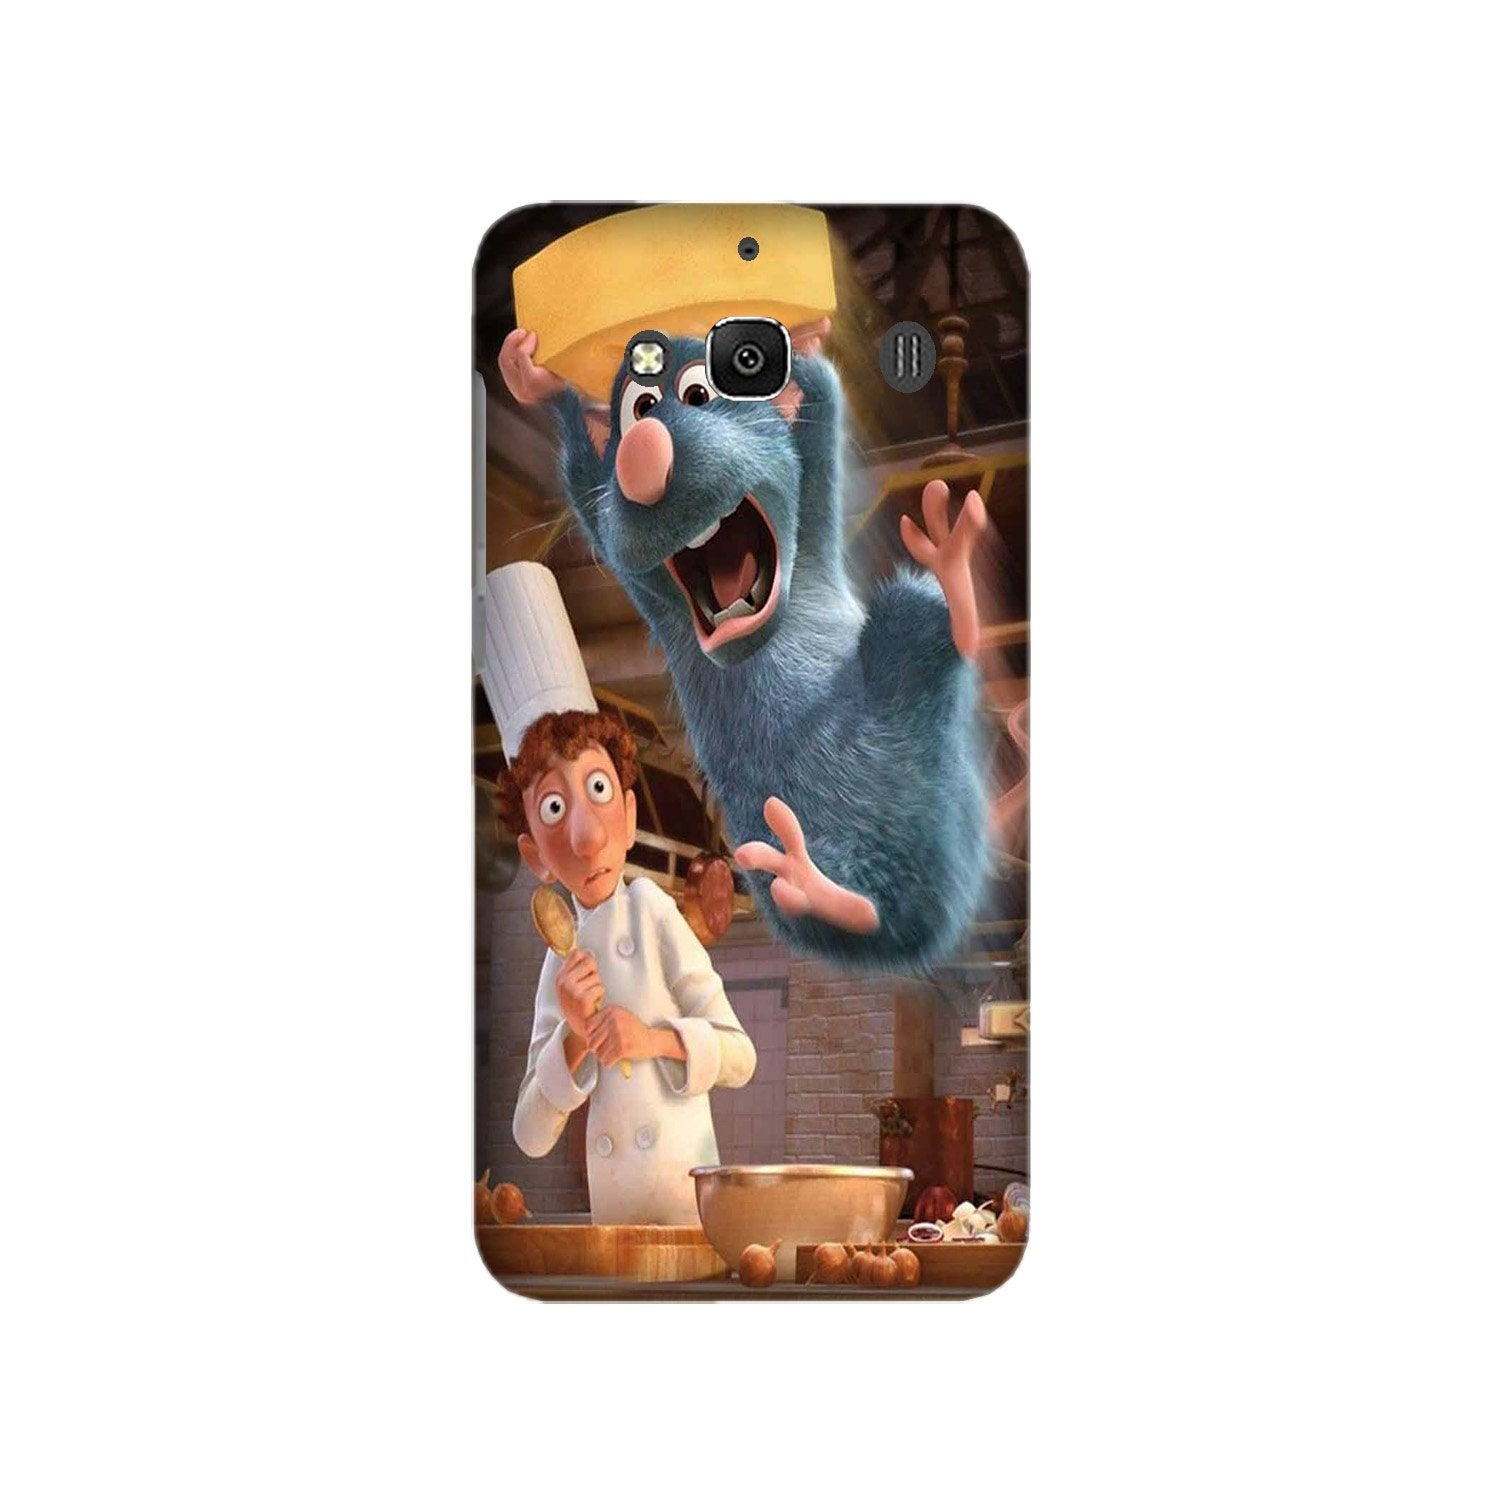 Ratatouille Mobile Back Case for Redmi 2 Prime  (Design - 347)